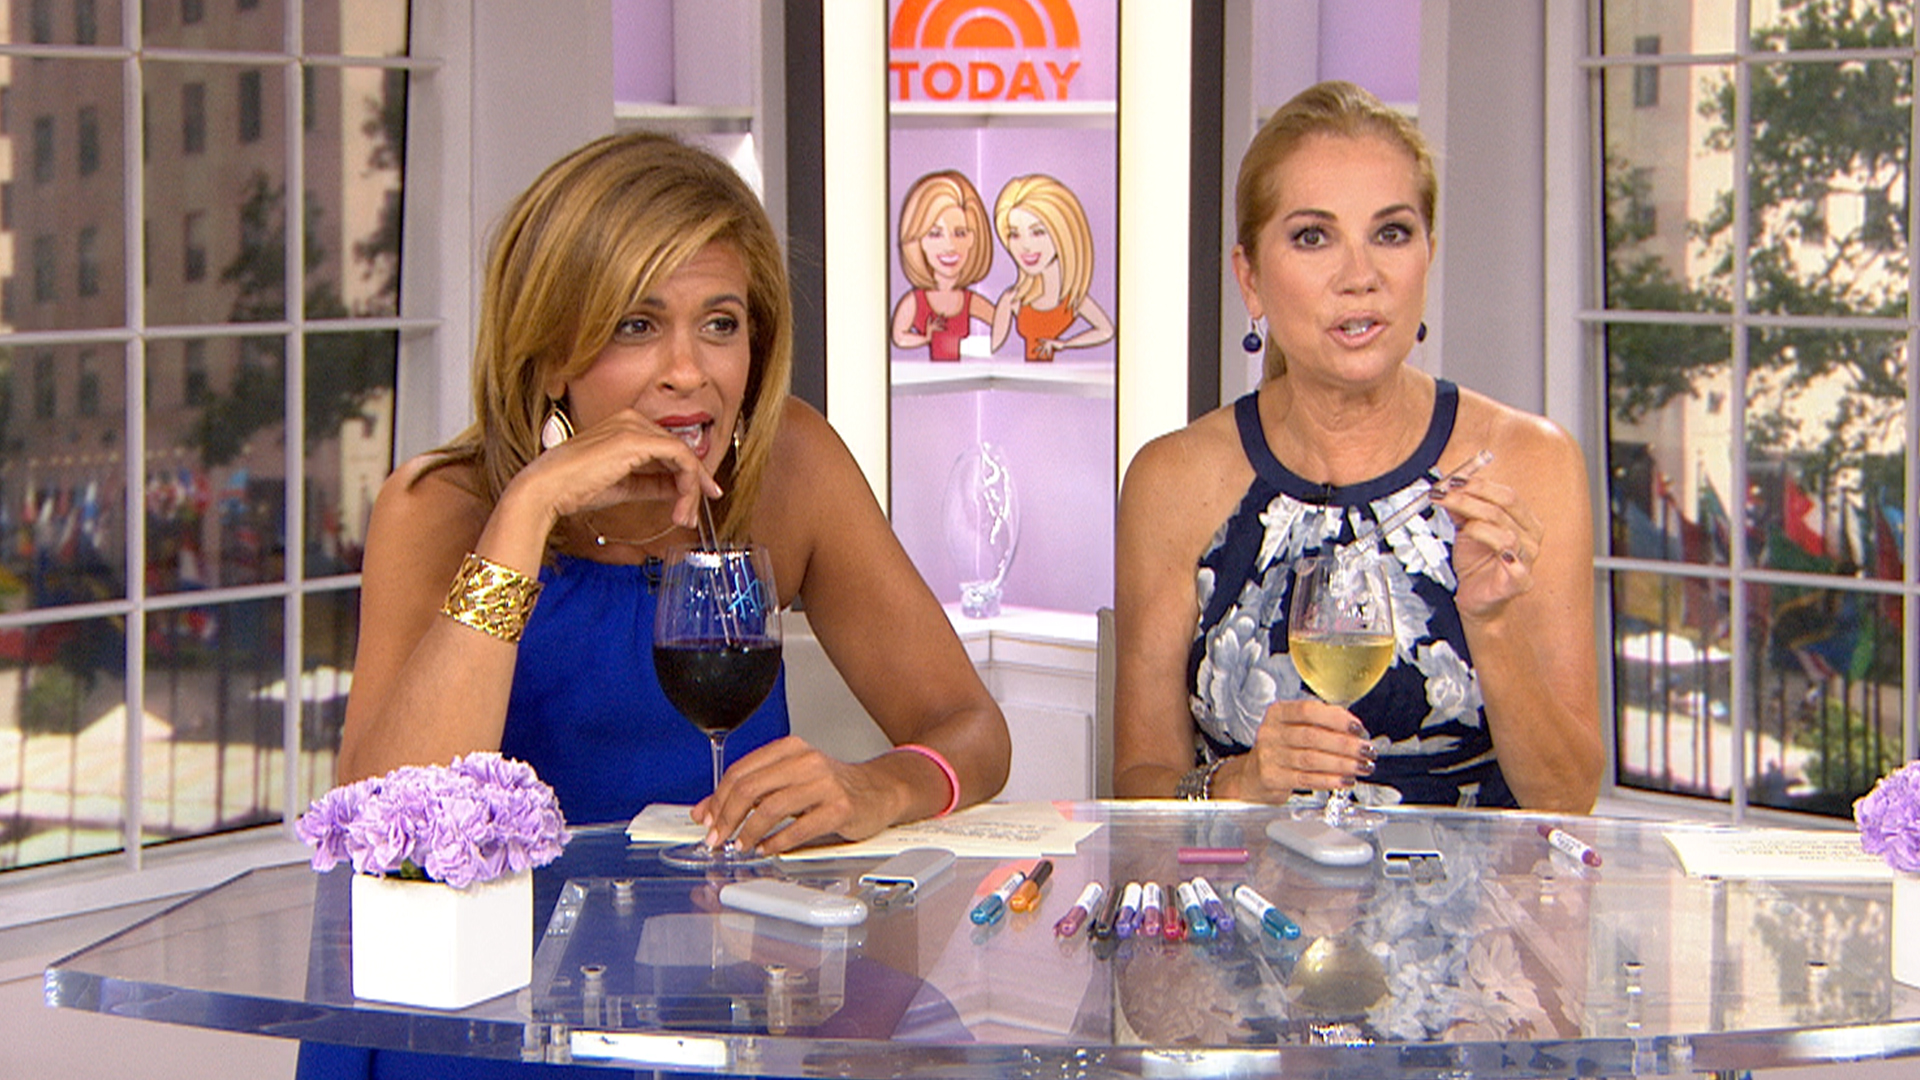 Wine on the Today Show